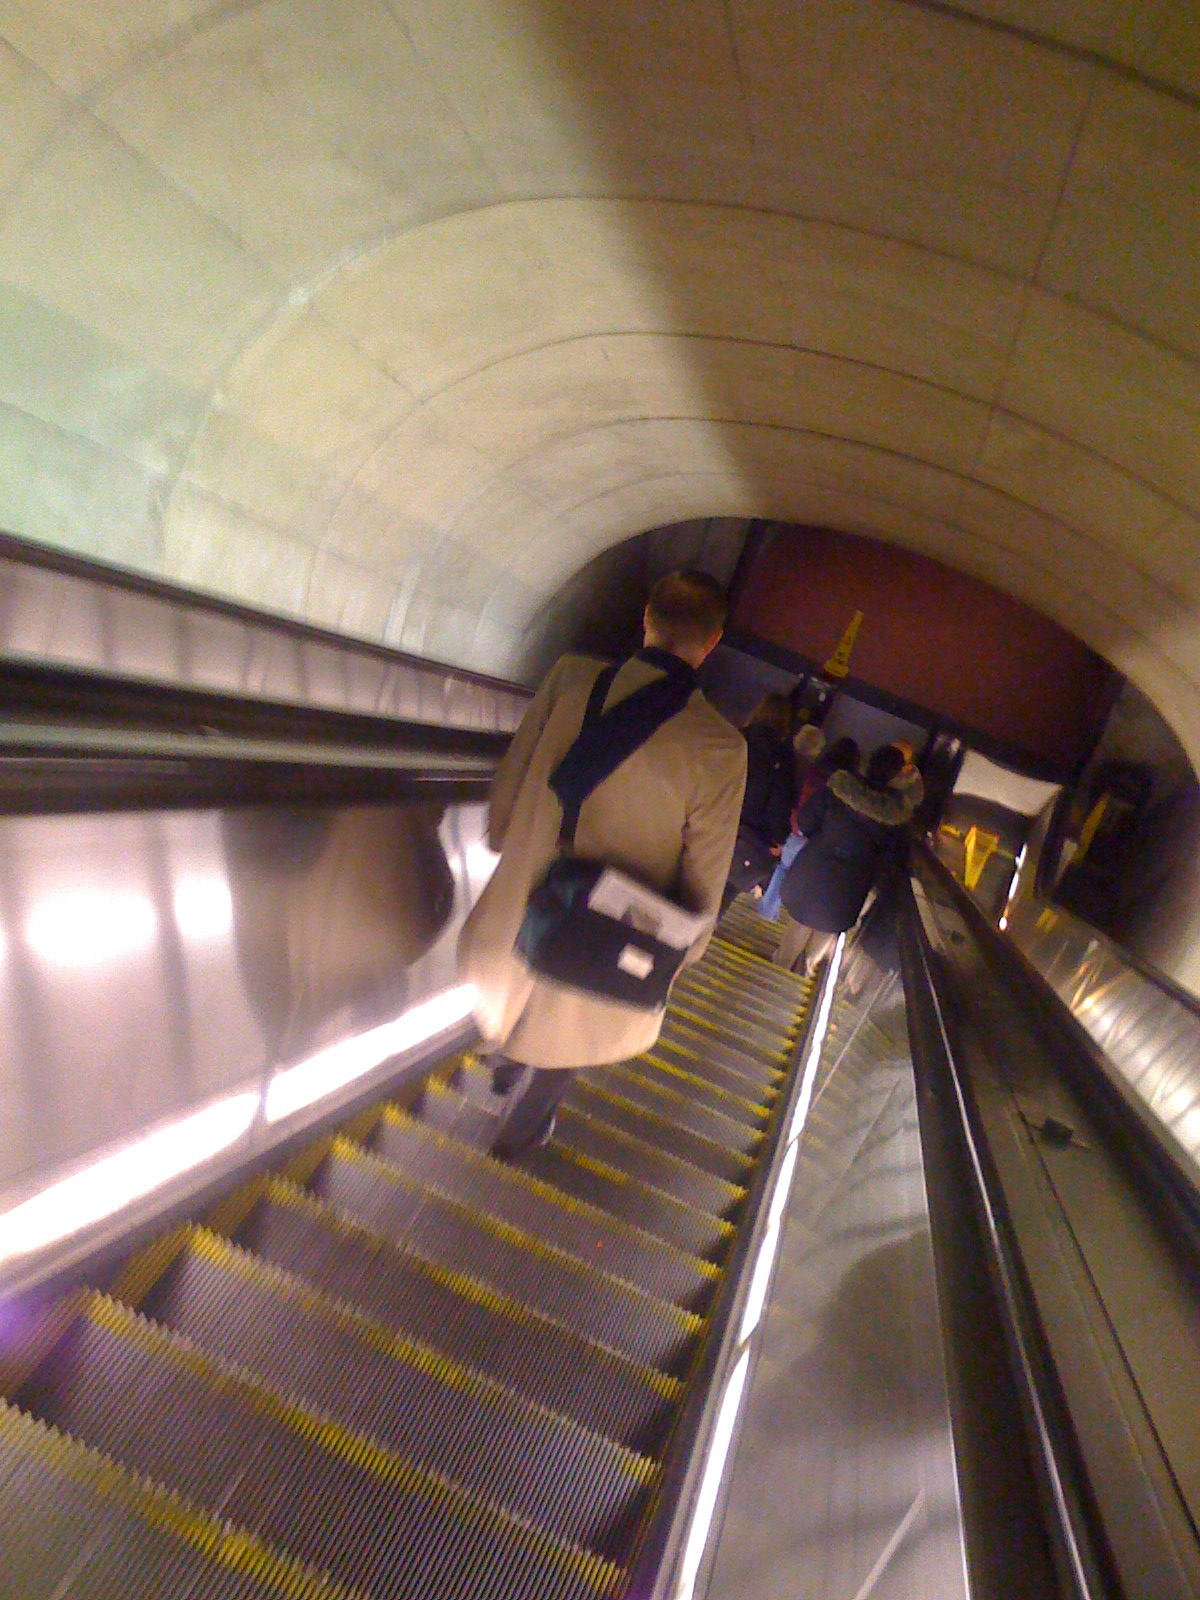 My daily trip down Dupont Circle escalator. The slight blurriness of the photo captures pretty well the touch of vertigo the long Metro escalators give me.